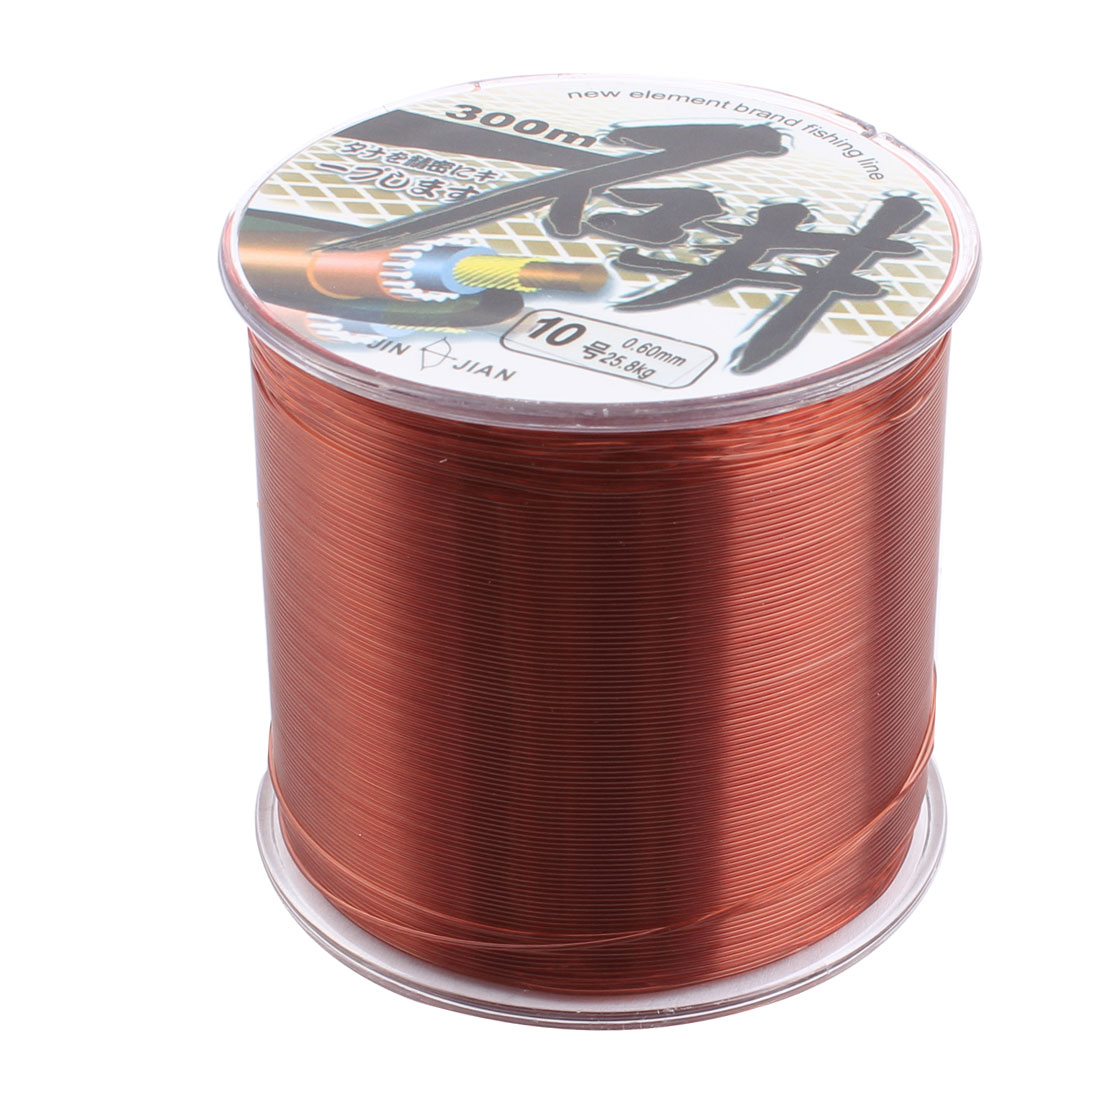 10# Brown Nylon 0.60mm Dia Thread 25.8kg Fishing Fish Line Spool Reel 300M